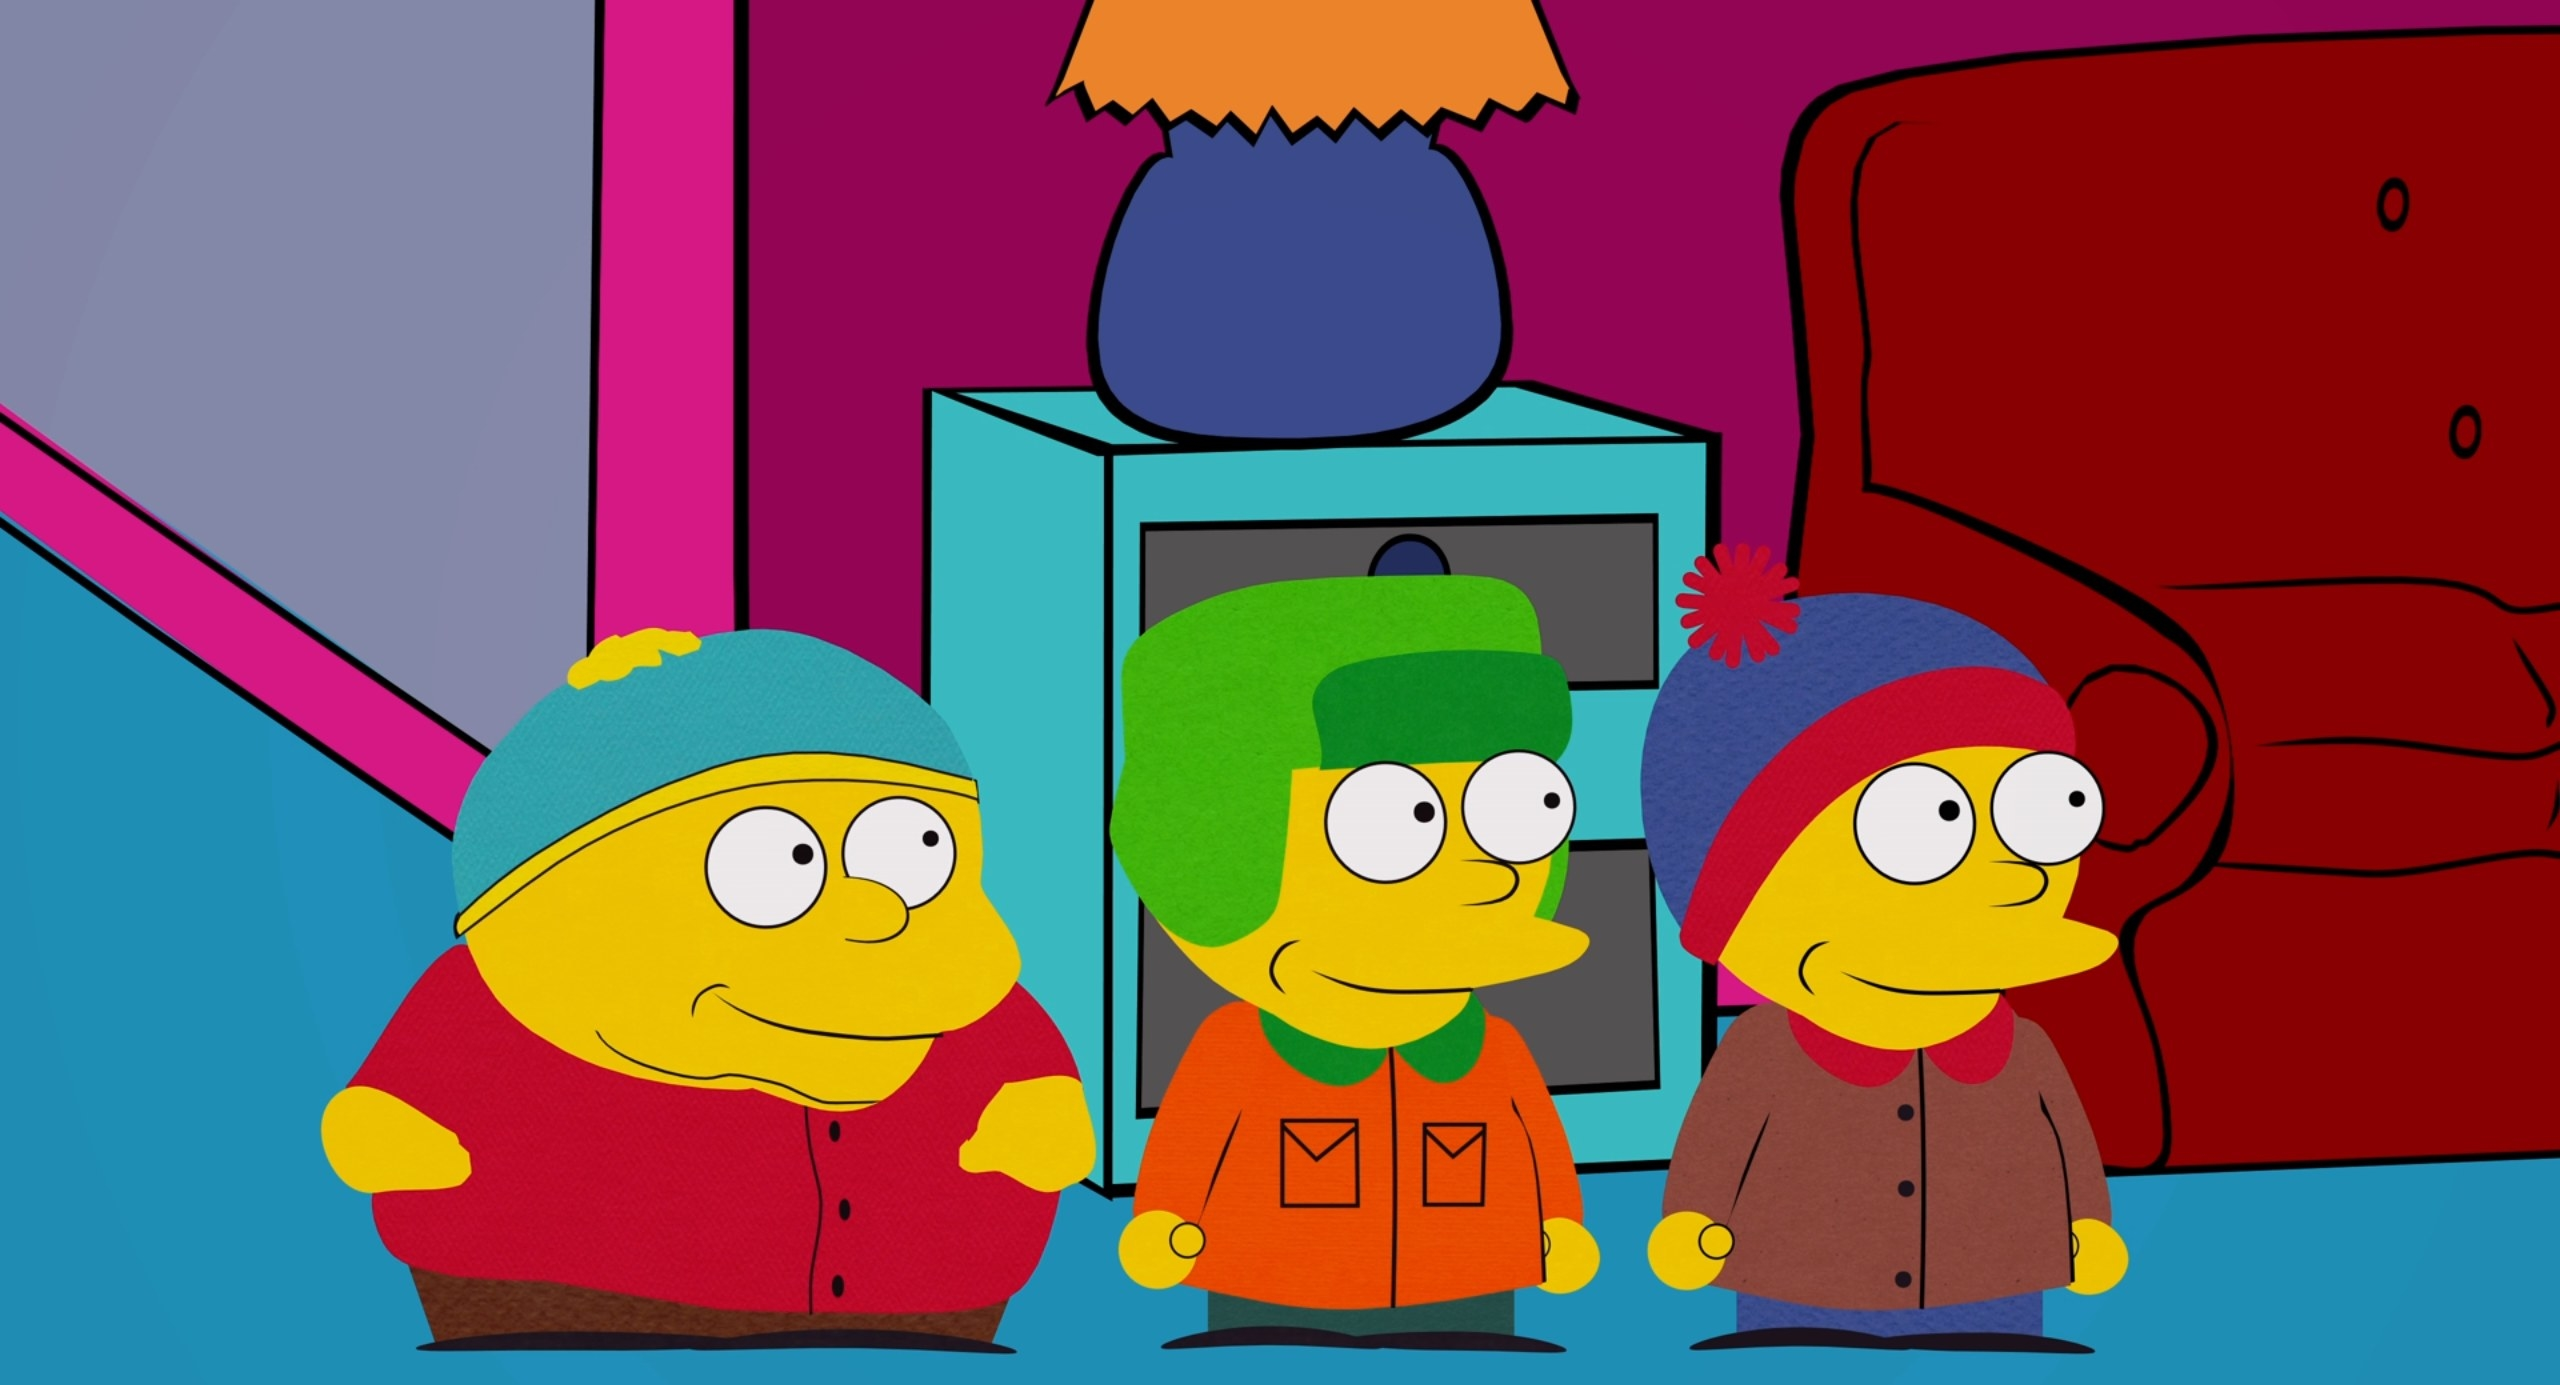 Cartman, Kyle, and Stan as Simpsons characters